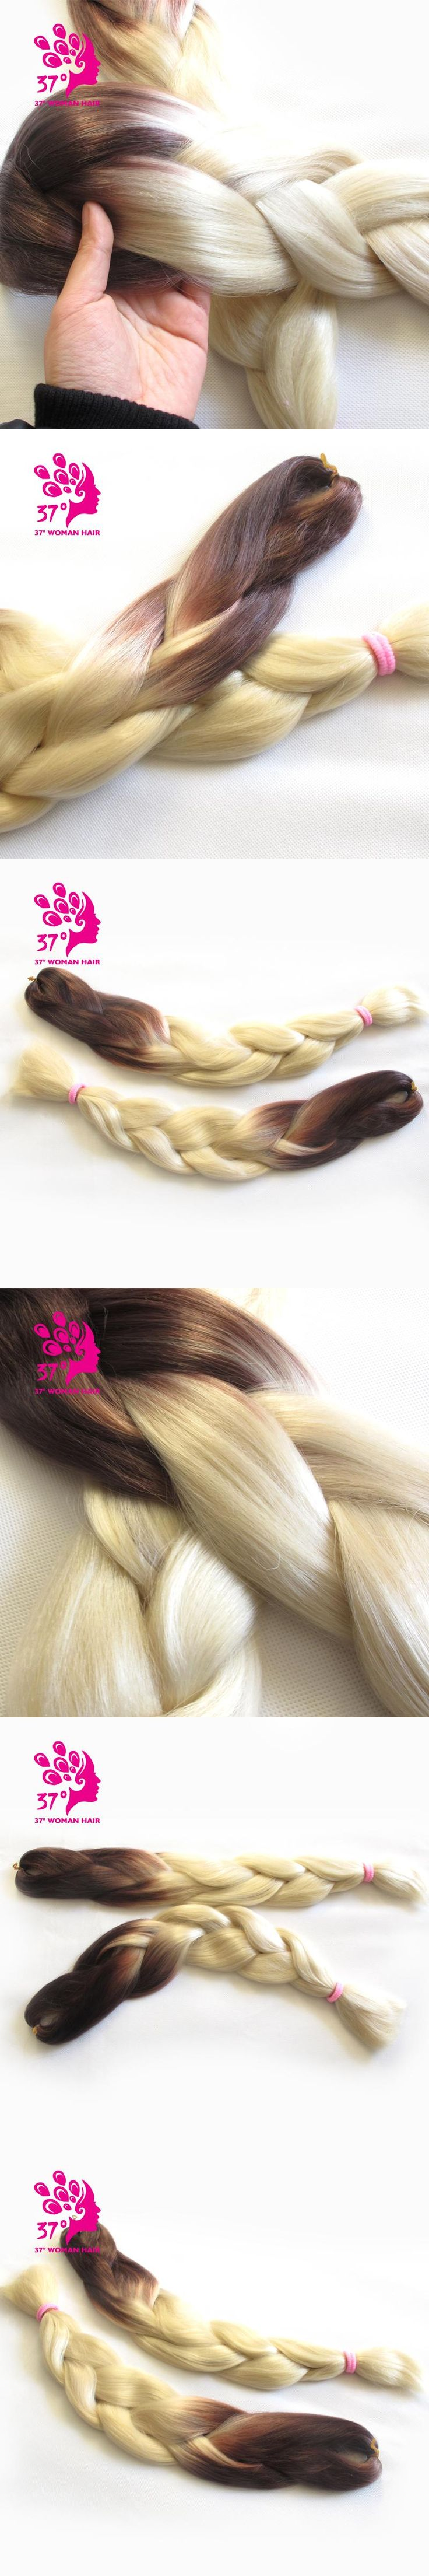 Dream ice's Ombre Box Braid Hair Synthetic braiding hair Extensions Two Tone Brown Color 100g